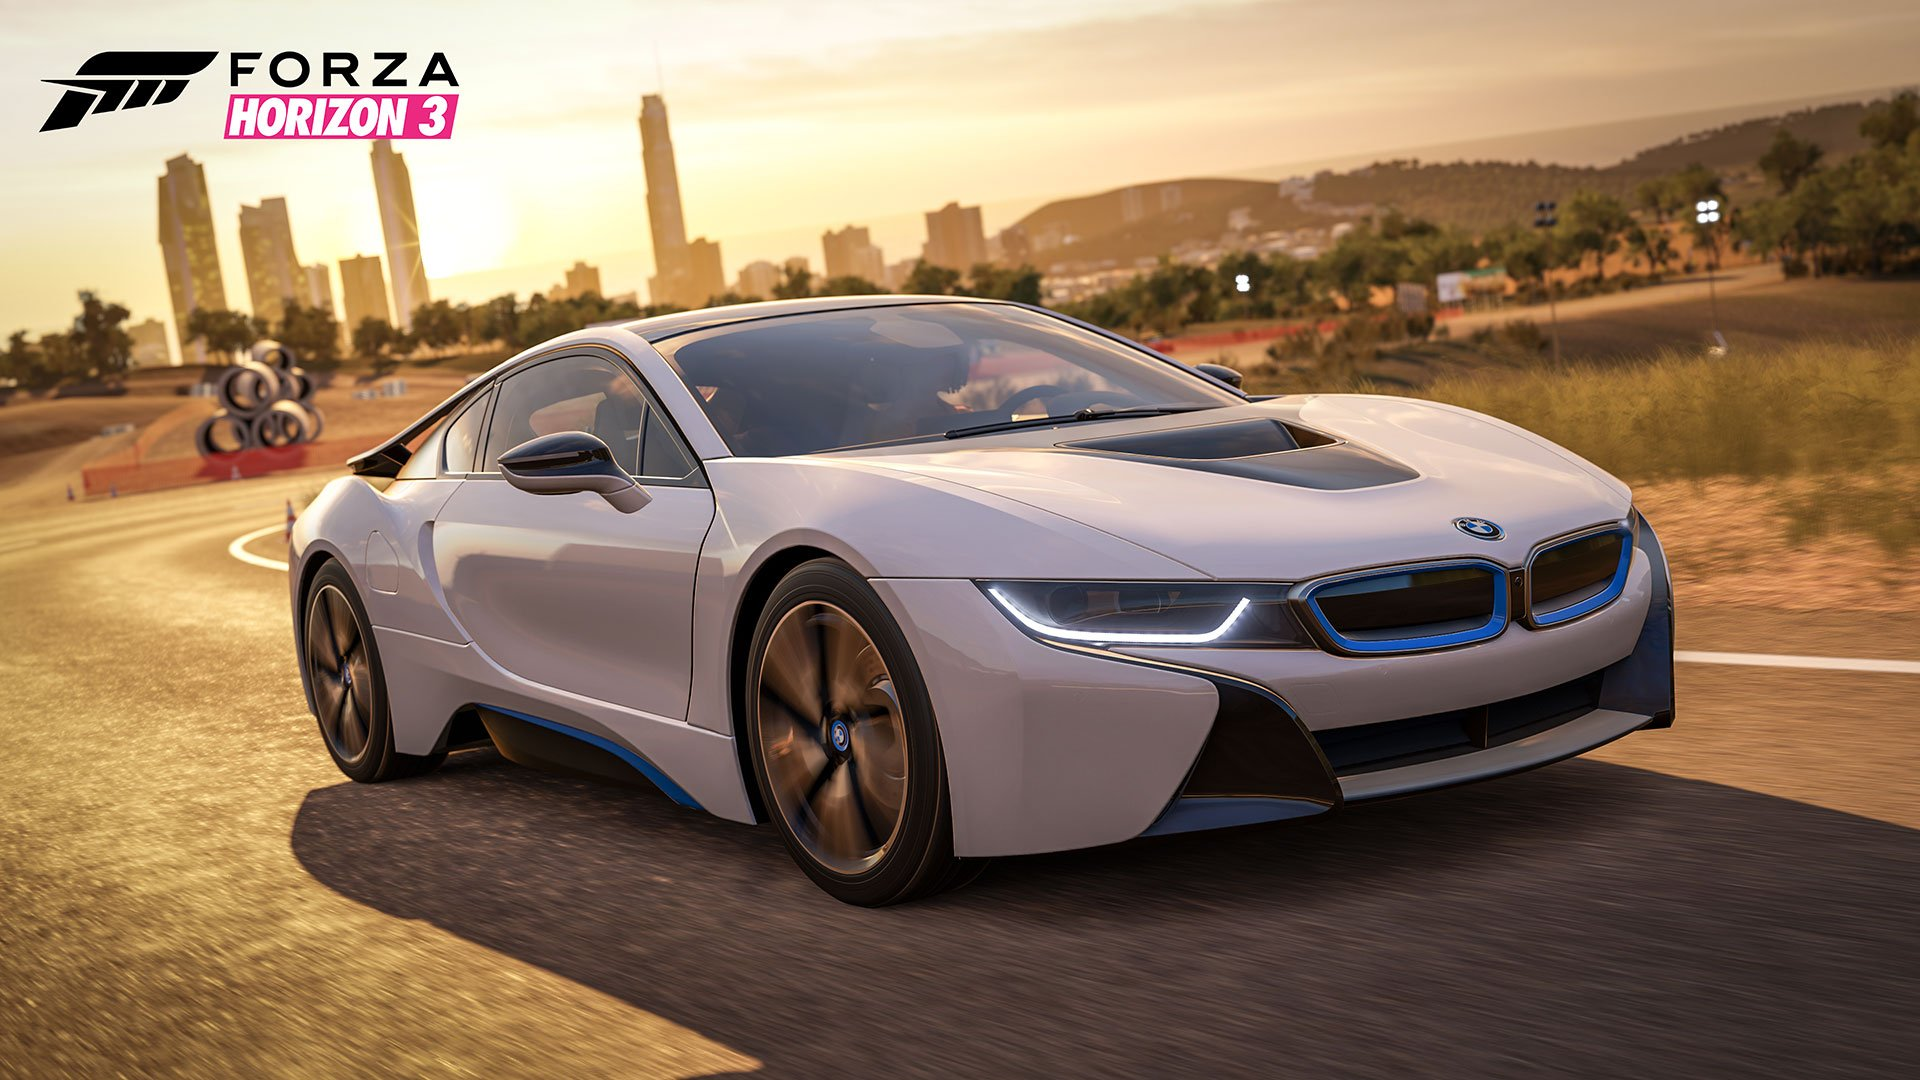 Forza Horizon 3s January Car Pack To Feature BMW I8